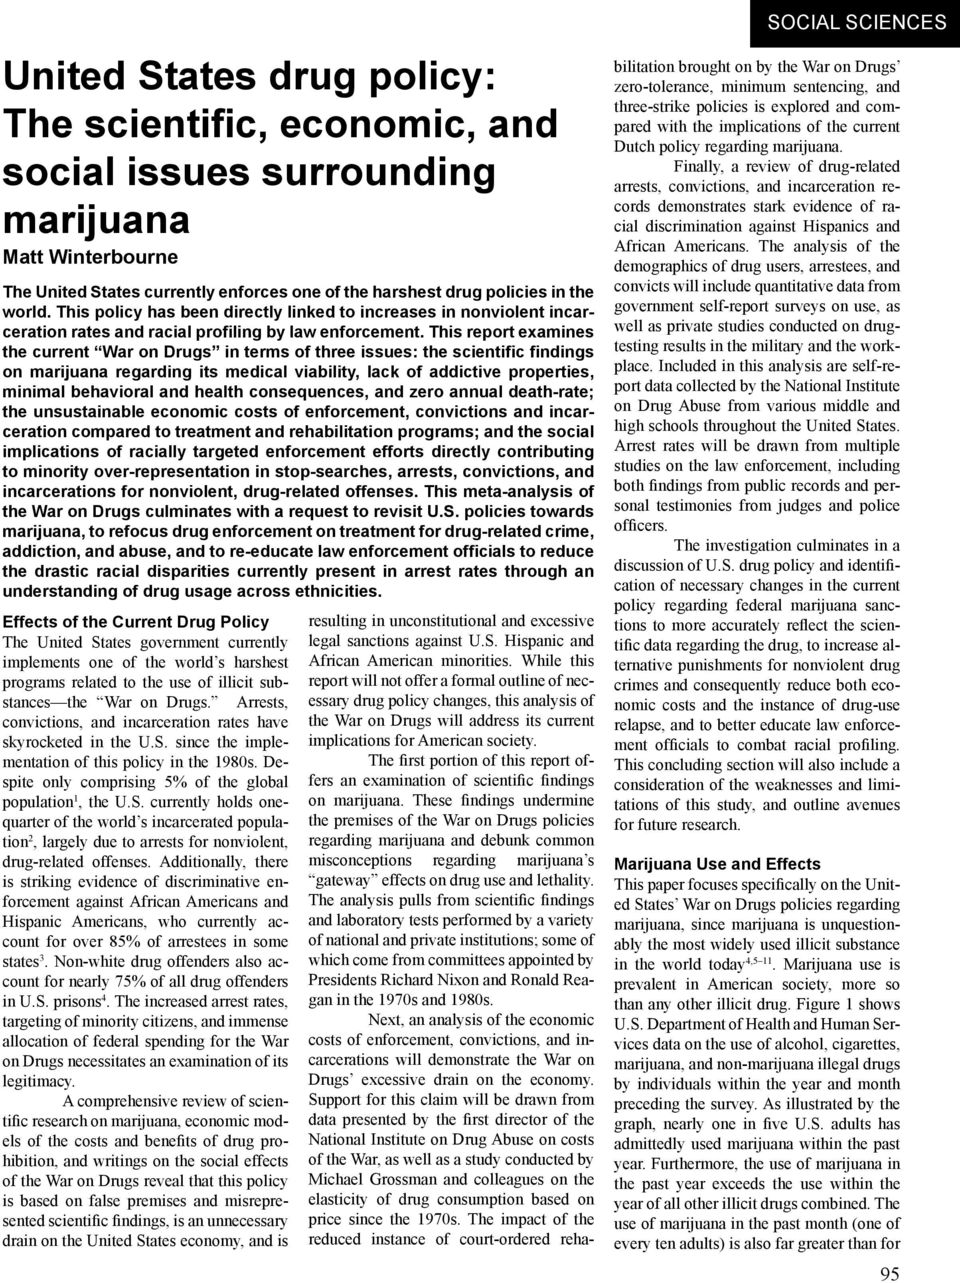 This report examines the current War on Drugs in terms of three issues: the scientific findings on marijuana regarding its medical viability, lack of addictive properties, minimal behavioral and